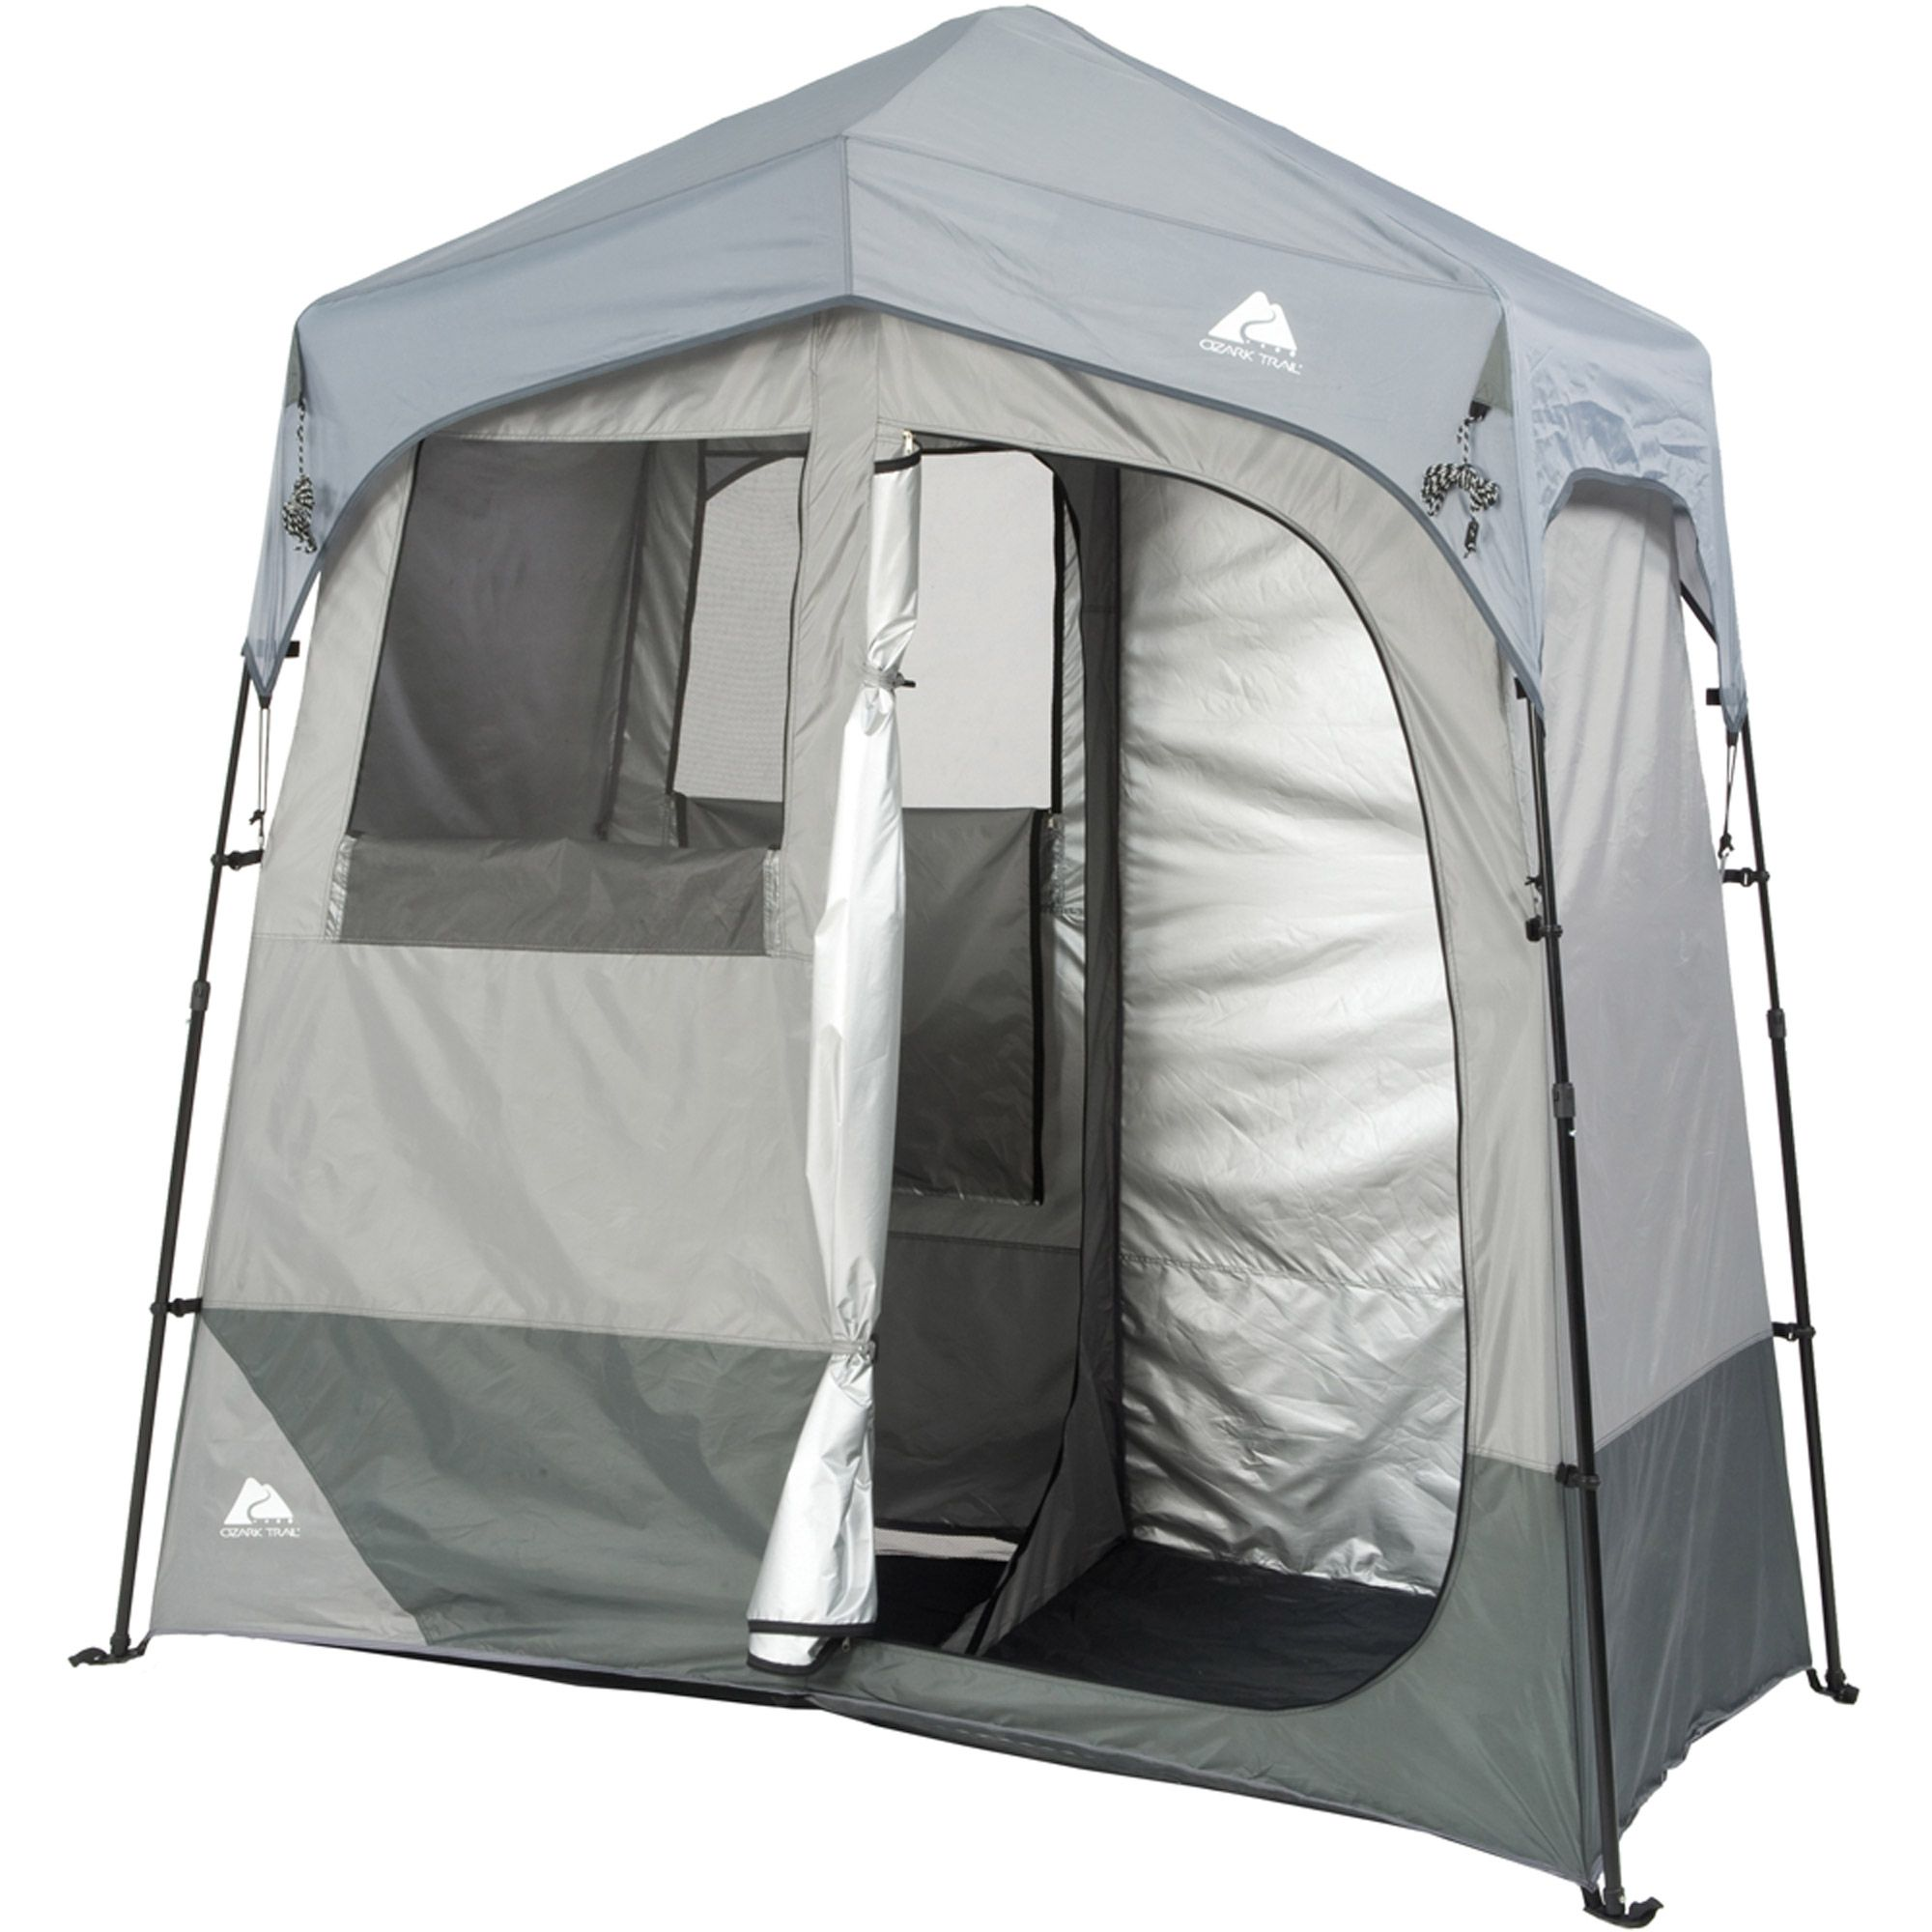 Sports Outdoors Camping Toilet Shower Tent Tent